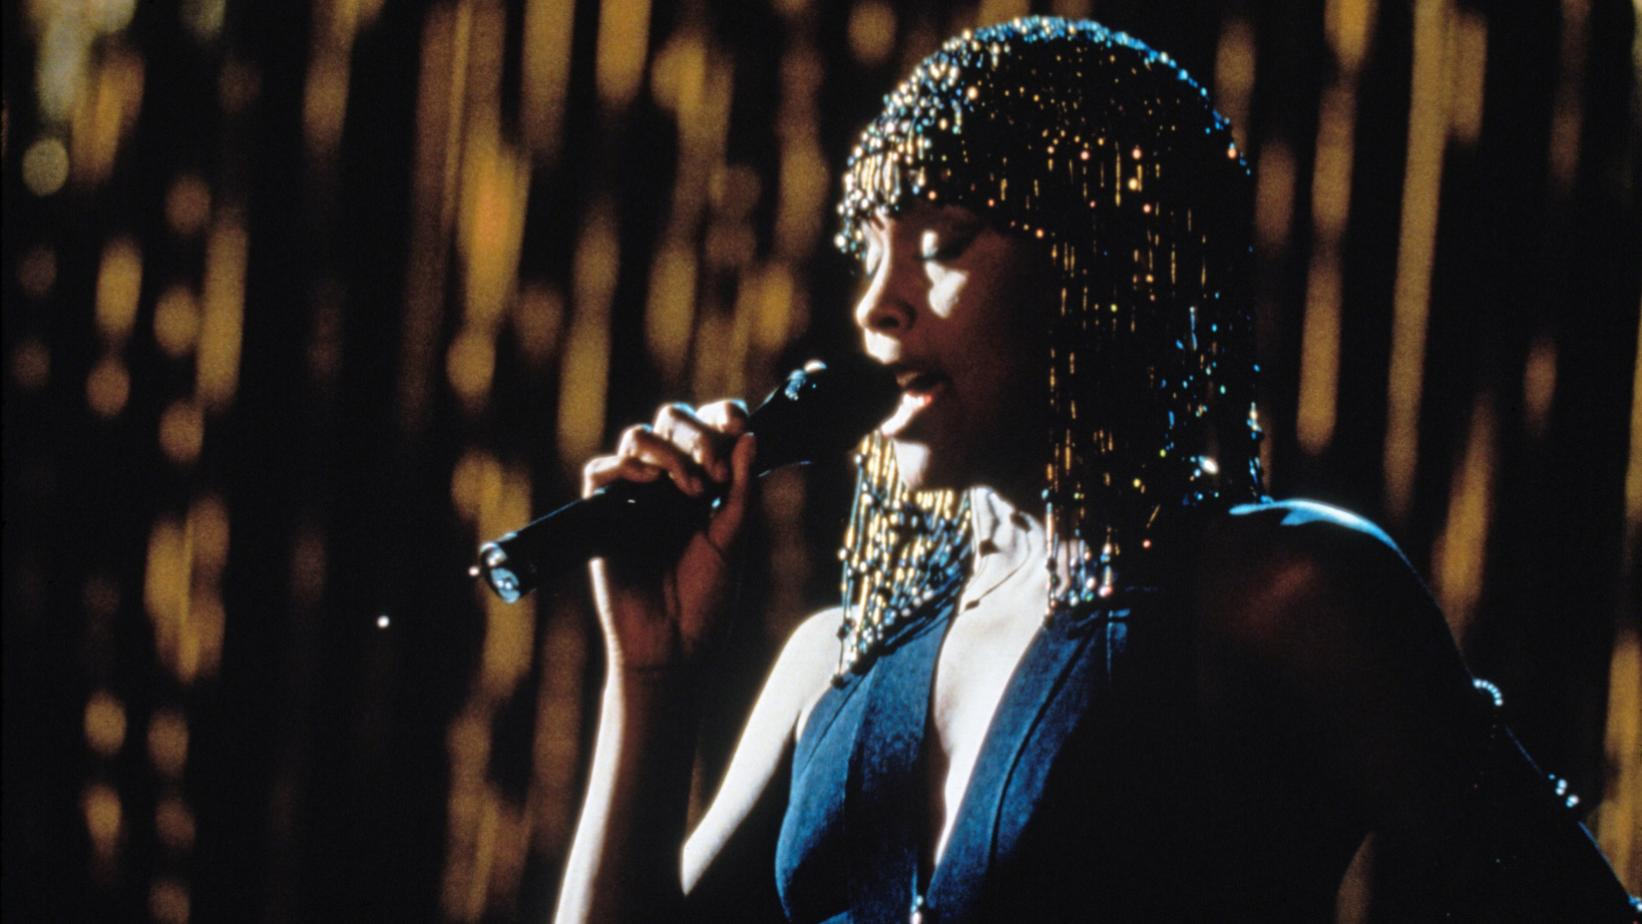 Whitney Houston photographed in The Bodyguard